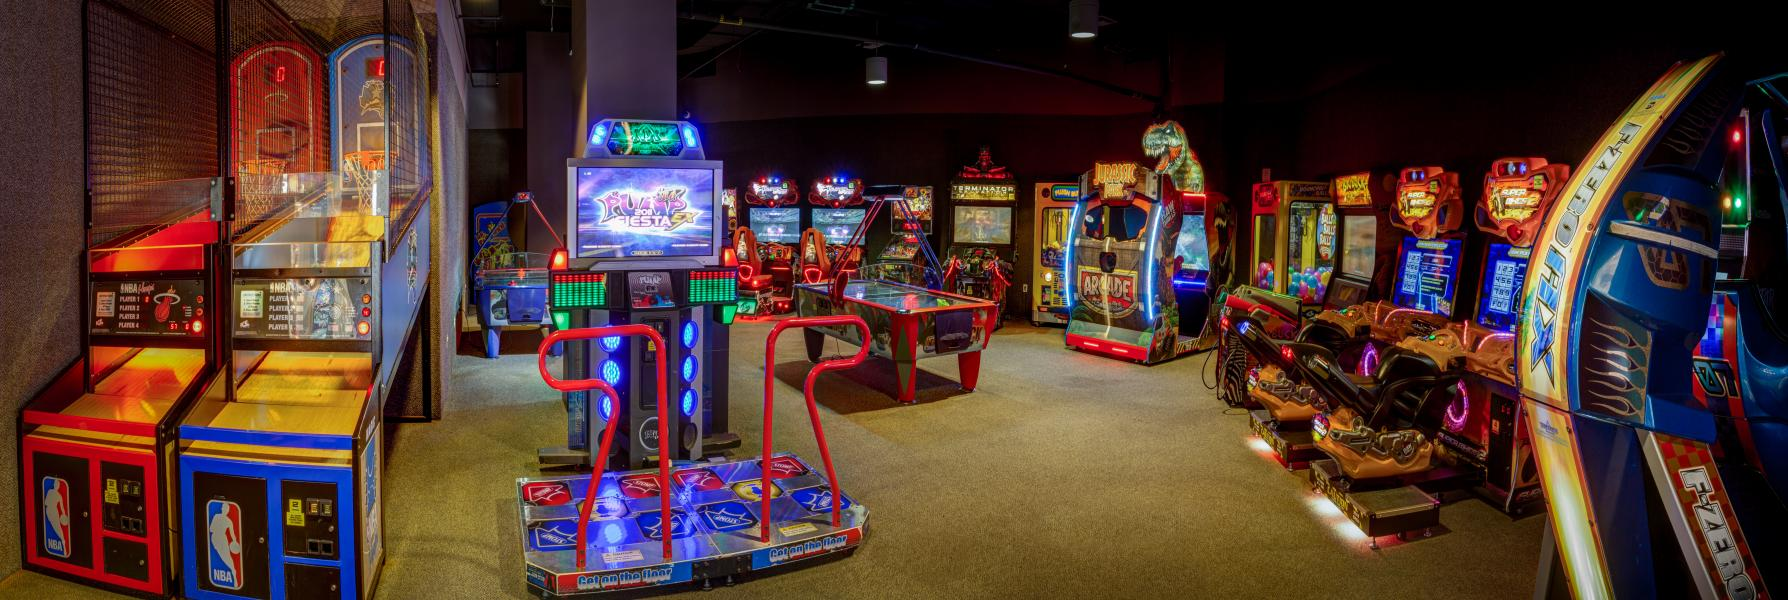 Rosen Shingle Creek Video Arcade